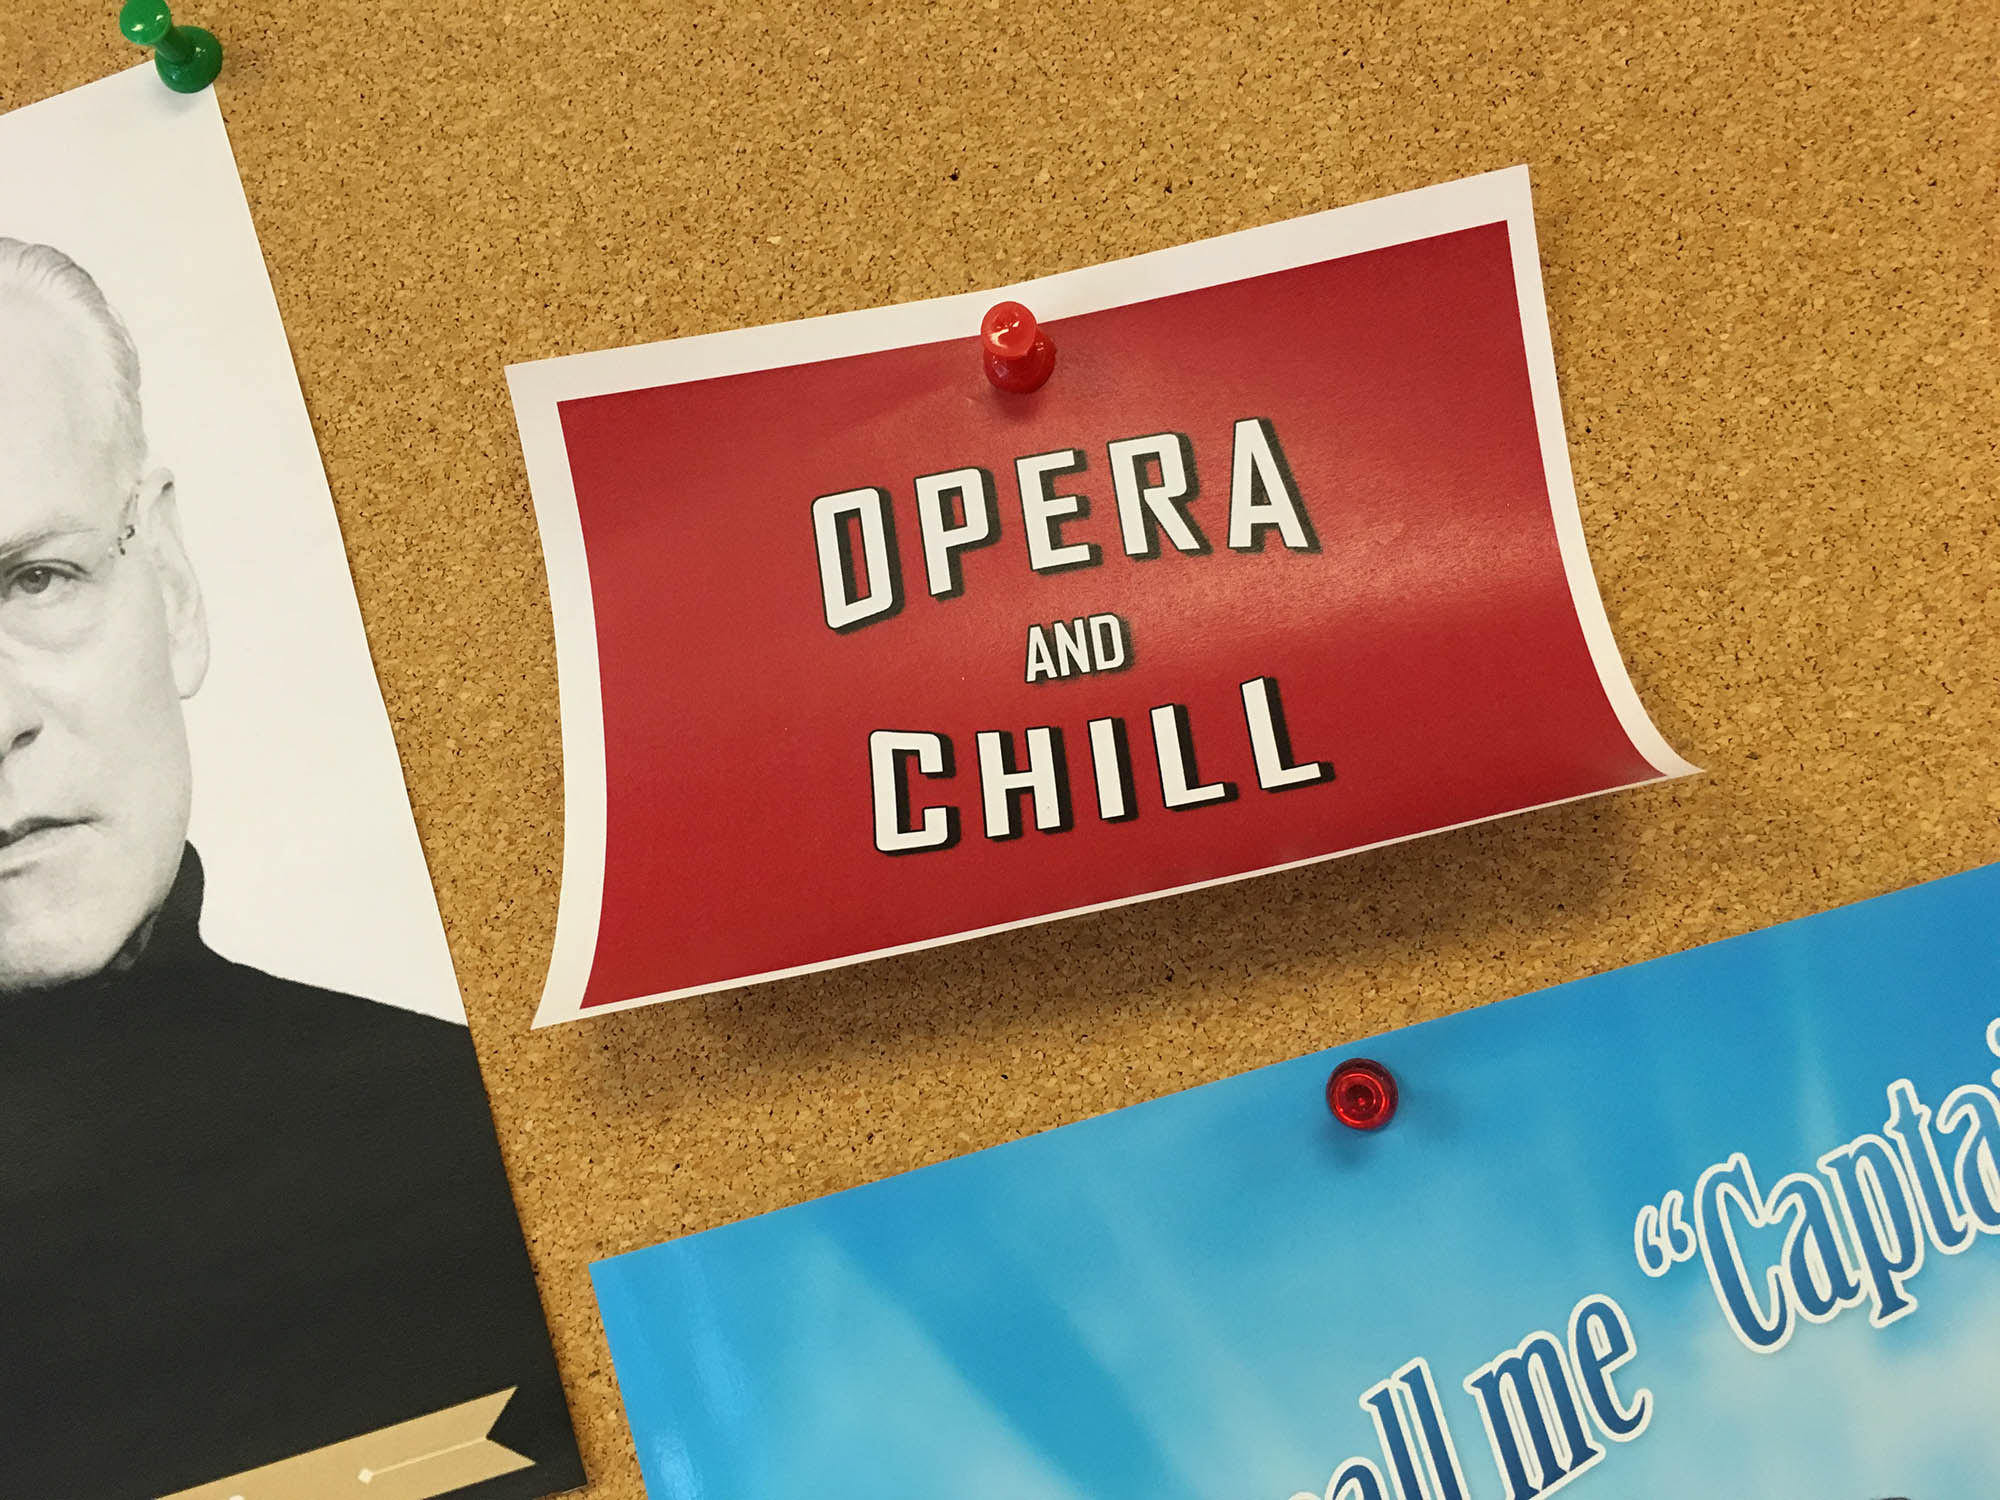 So we can't Netflix and chill. But maybe we can opera and chill. Maybe.